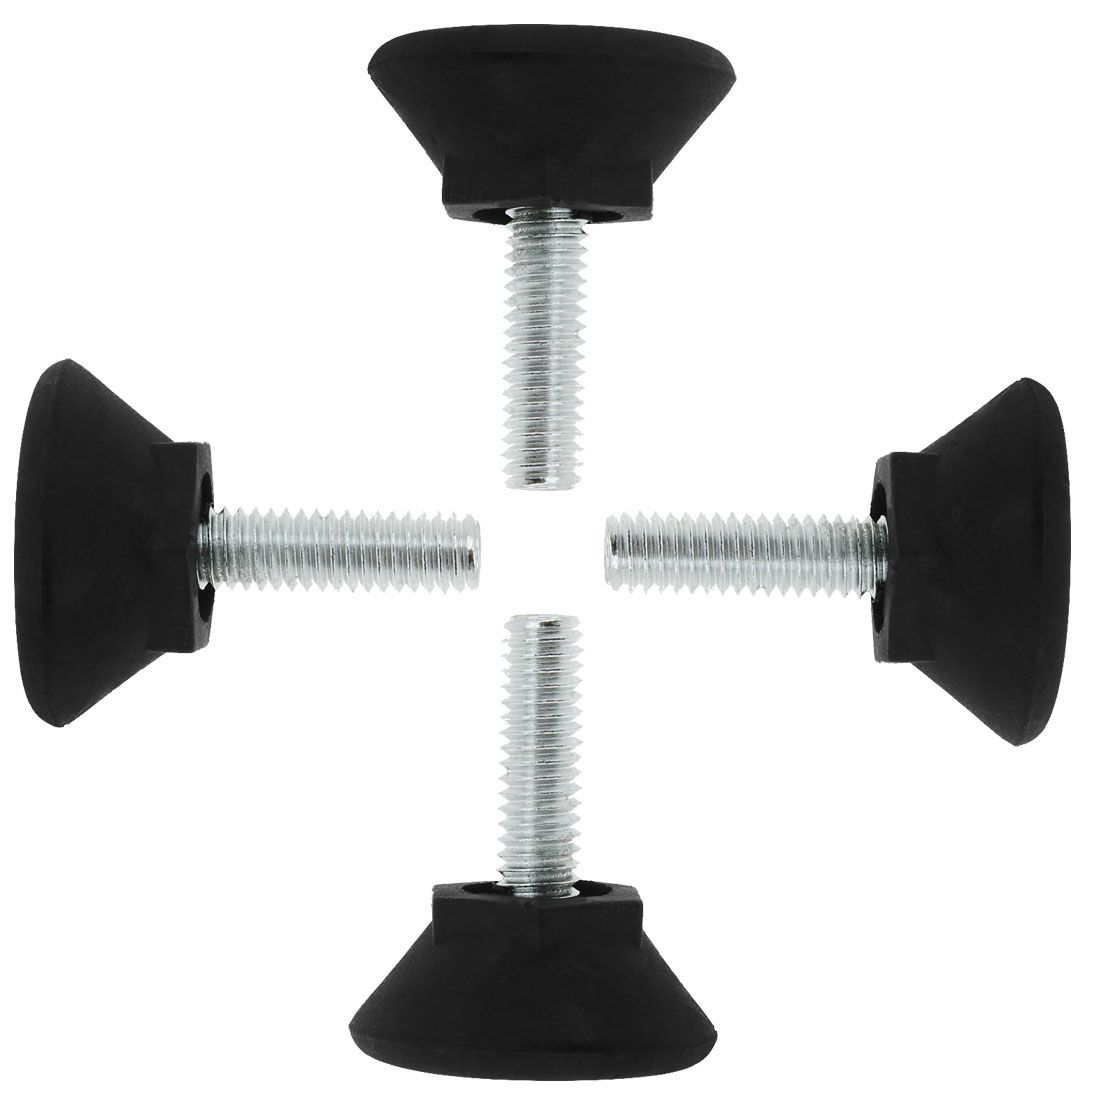 M6 x 20 x 25mm Adjustable Leveling Feet Floor Protector for Table Leg 4pcs - image 7 of 7